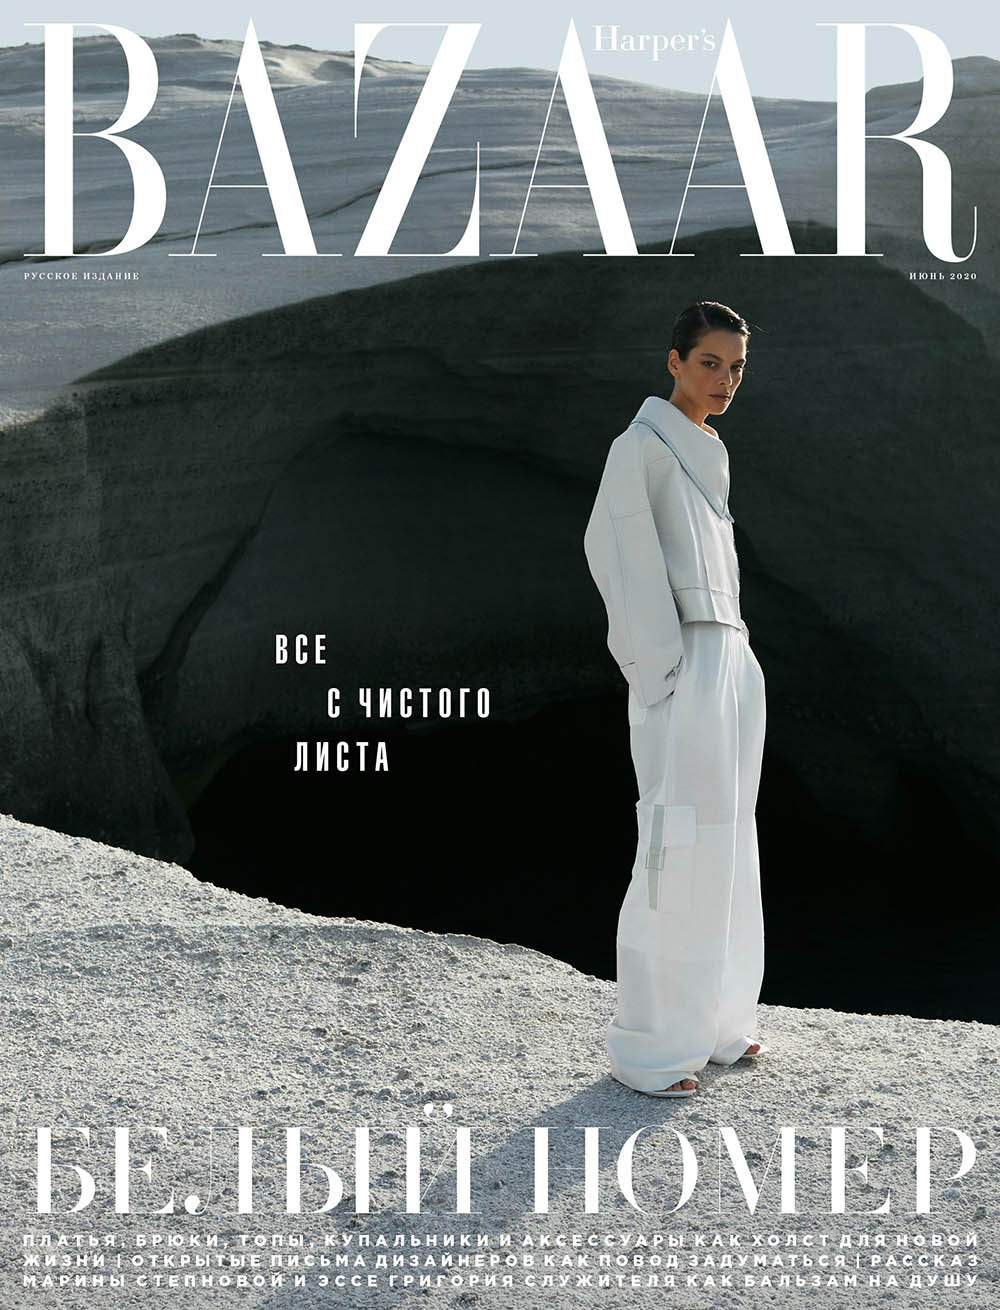 Nigina Sharipova covers Harper's Bazaar Russia June 2020 by Stephan Lisowski